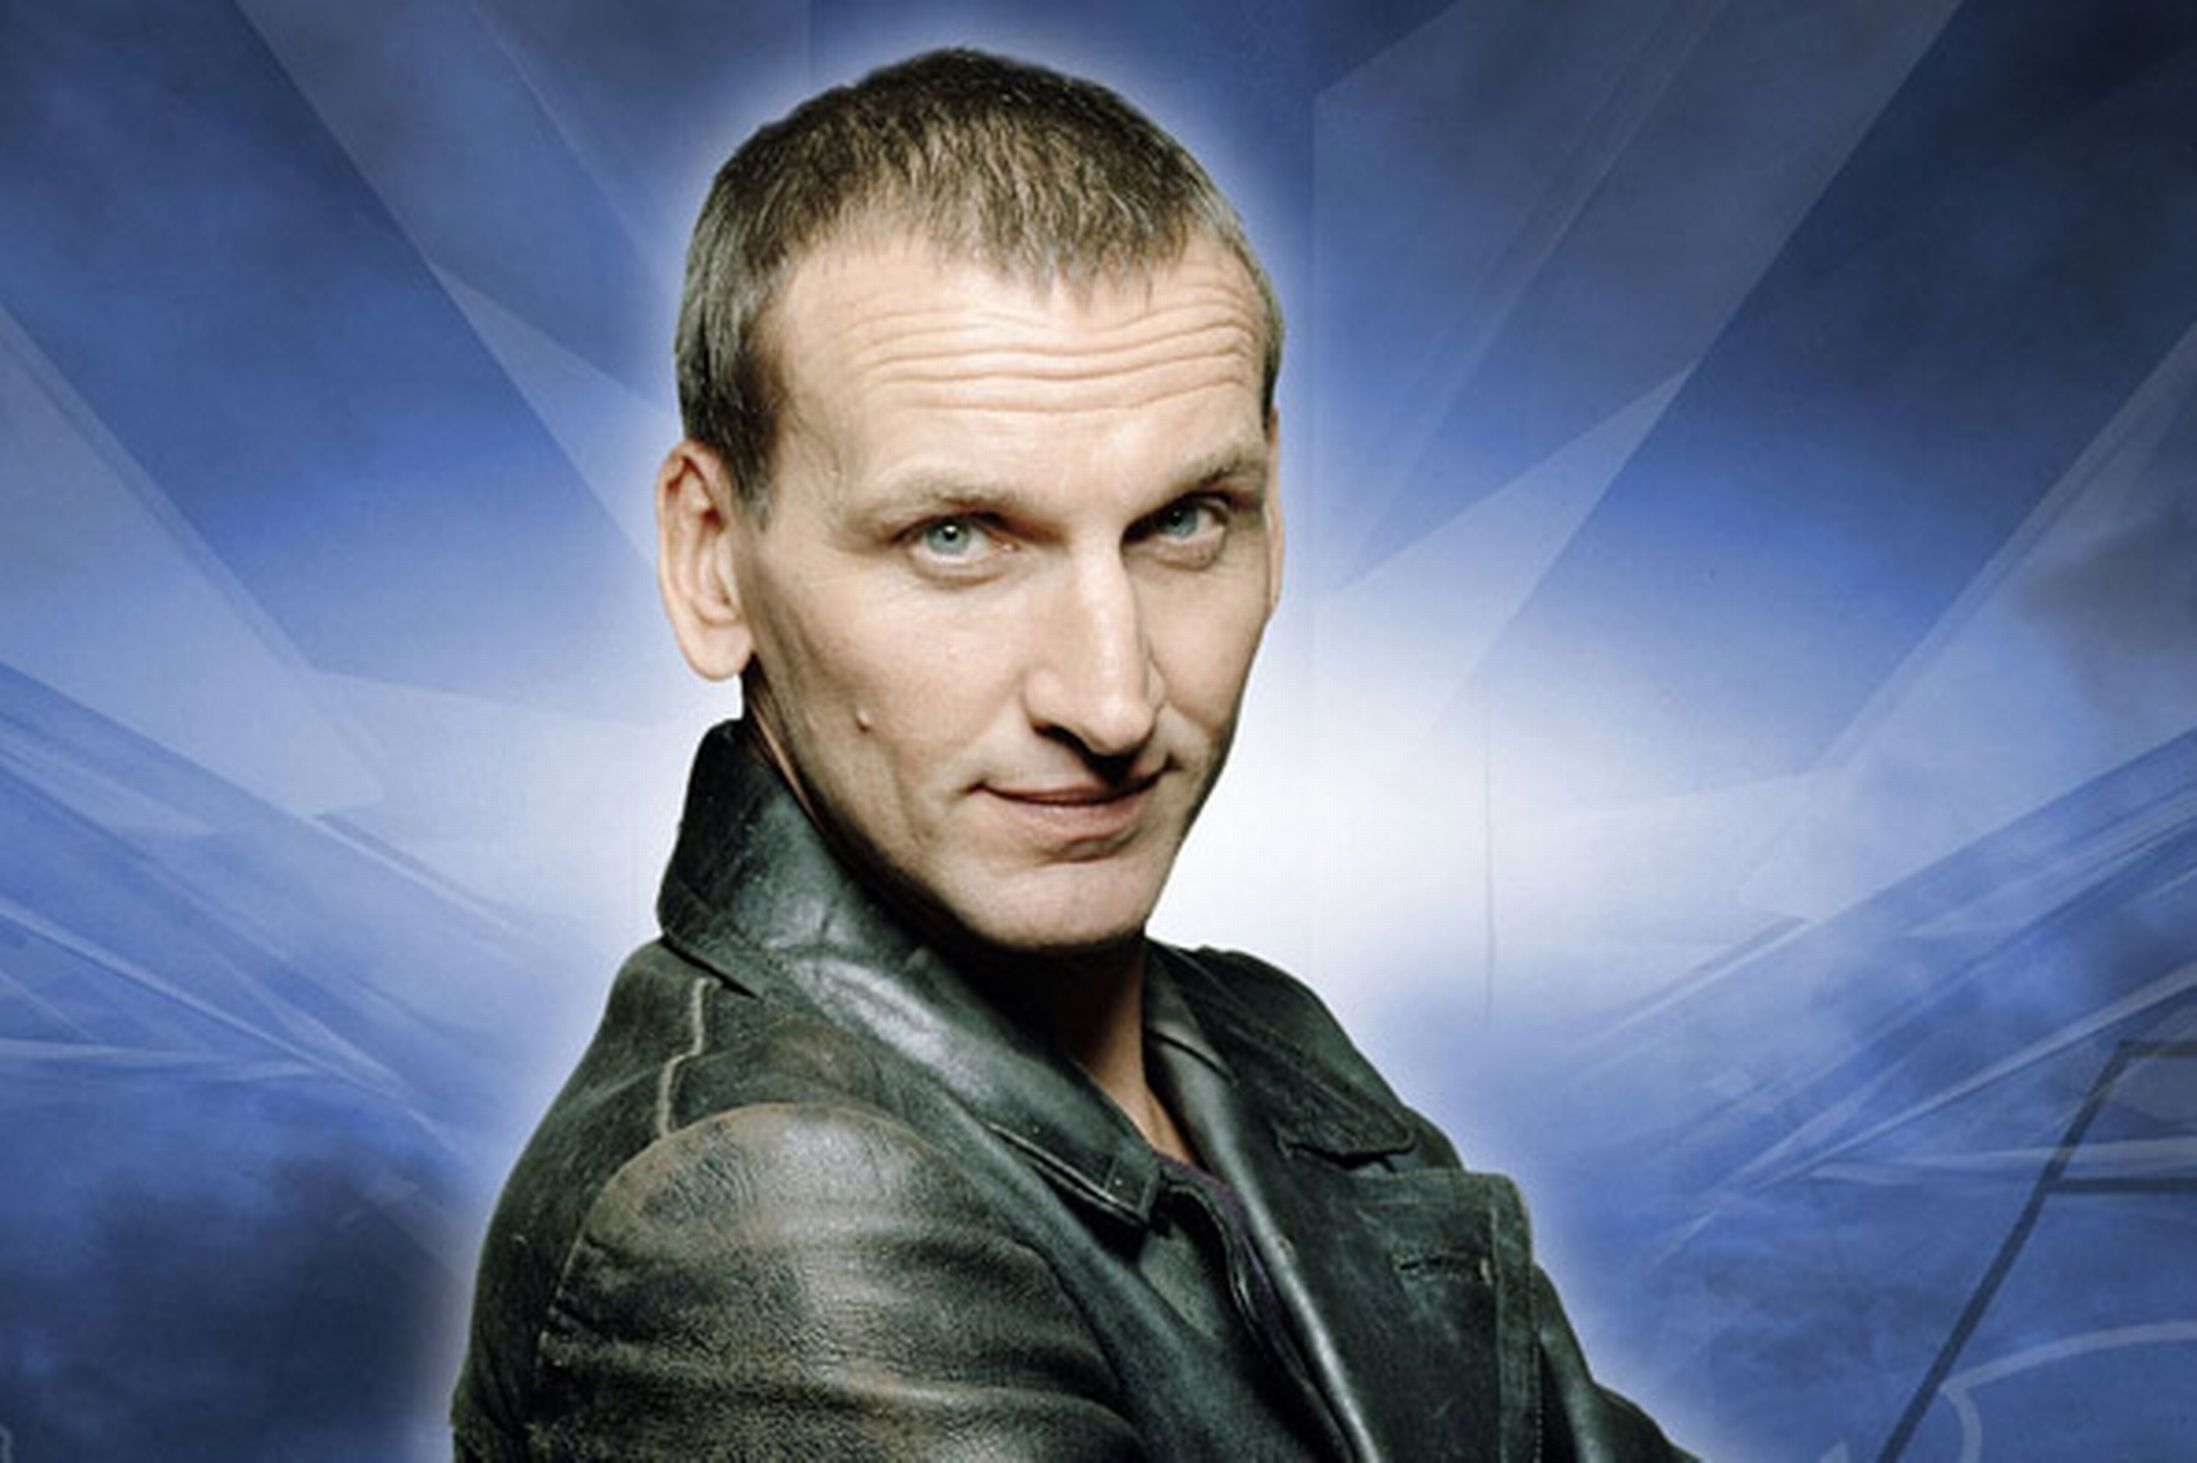 Christopher Eccleston earned a  million dollar salary, leaving the net worth at 6 million in 2017